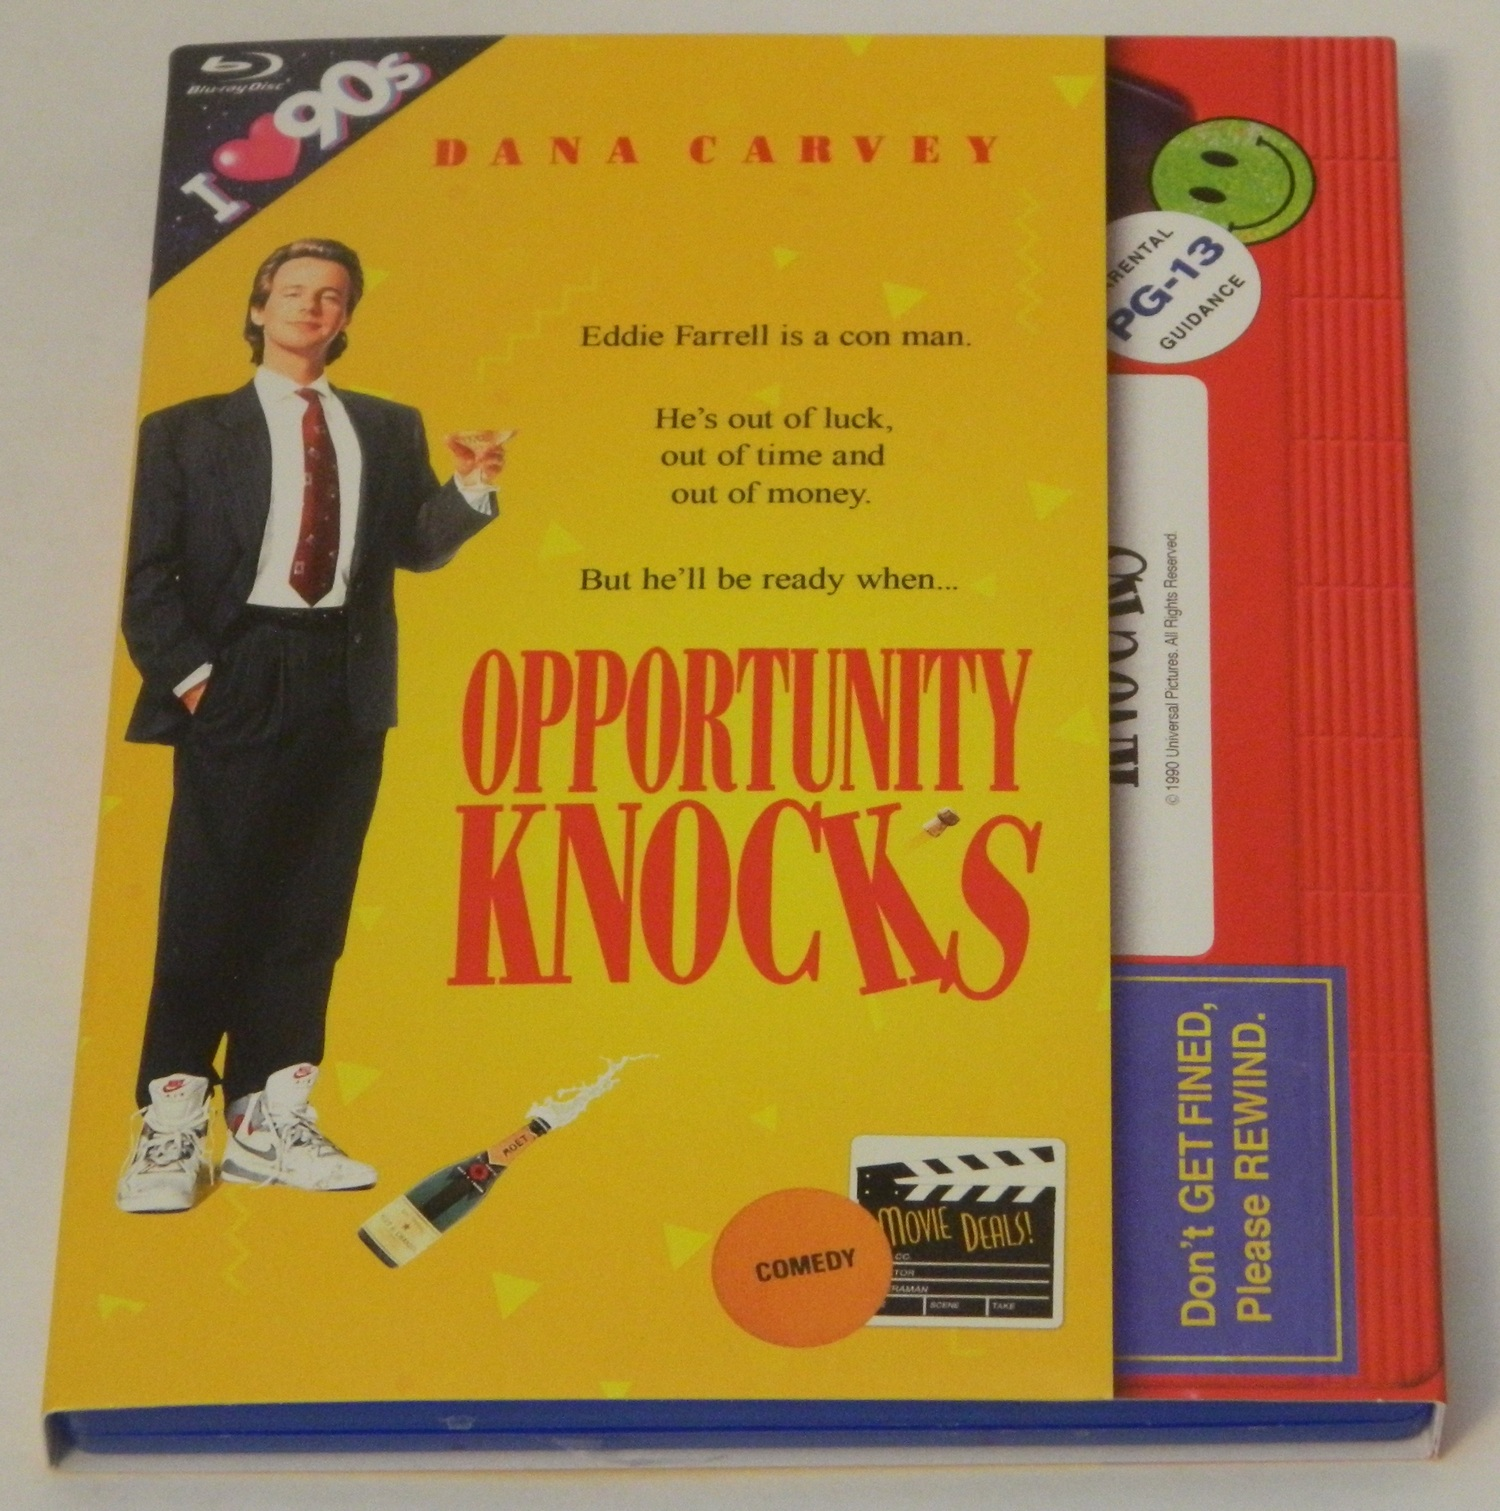 Opportunity Knocks Retro VHS Art Blu-ray